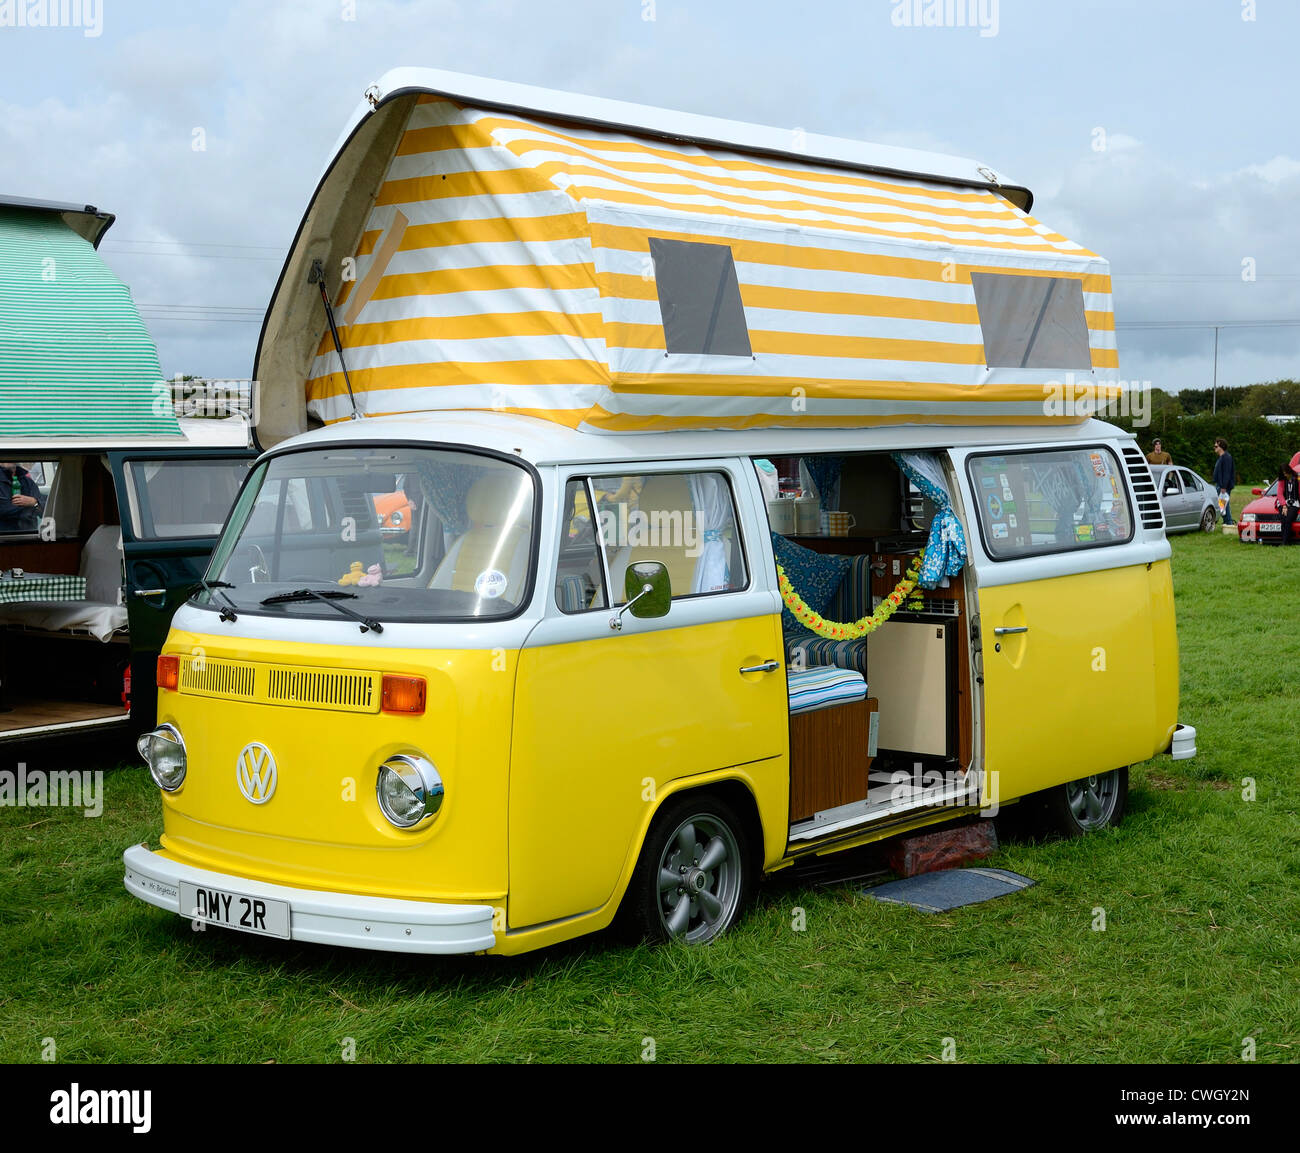 Vw Camper Van High Resolution Stock Photography And Images Alamy